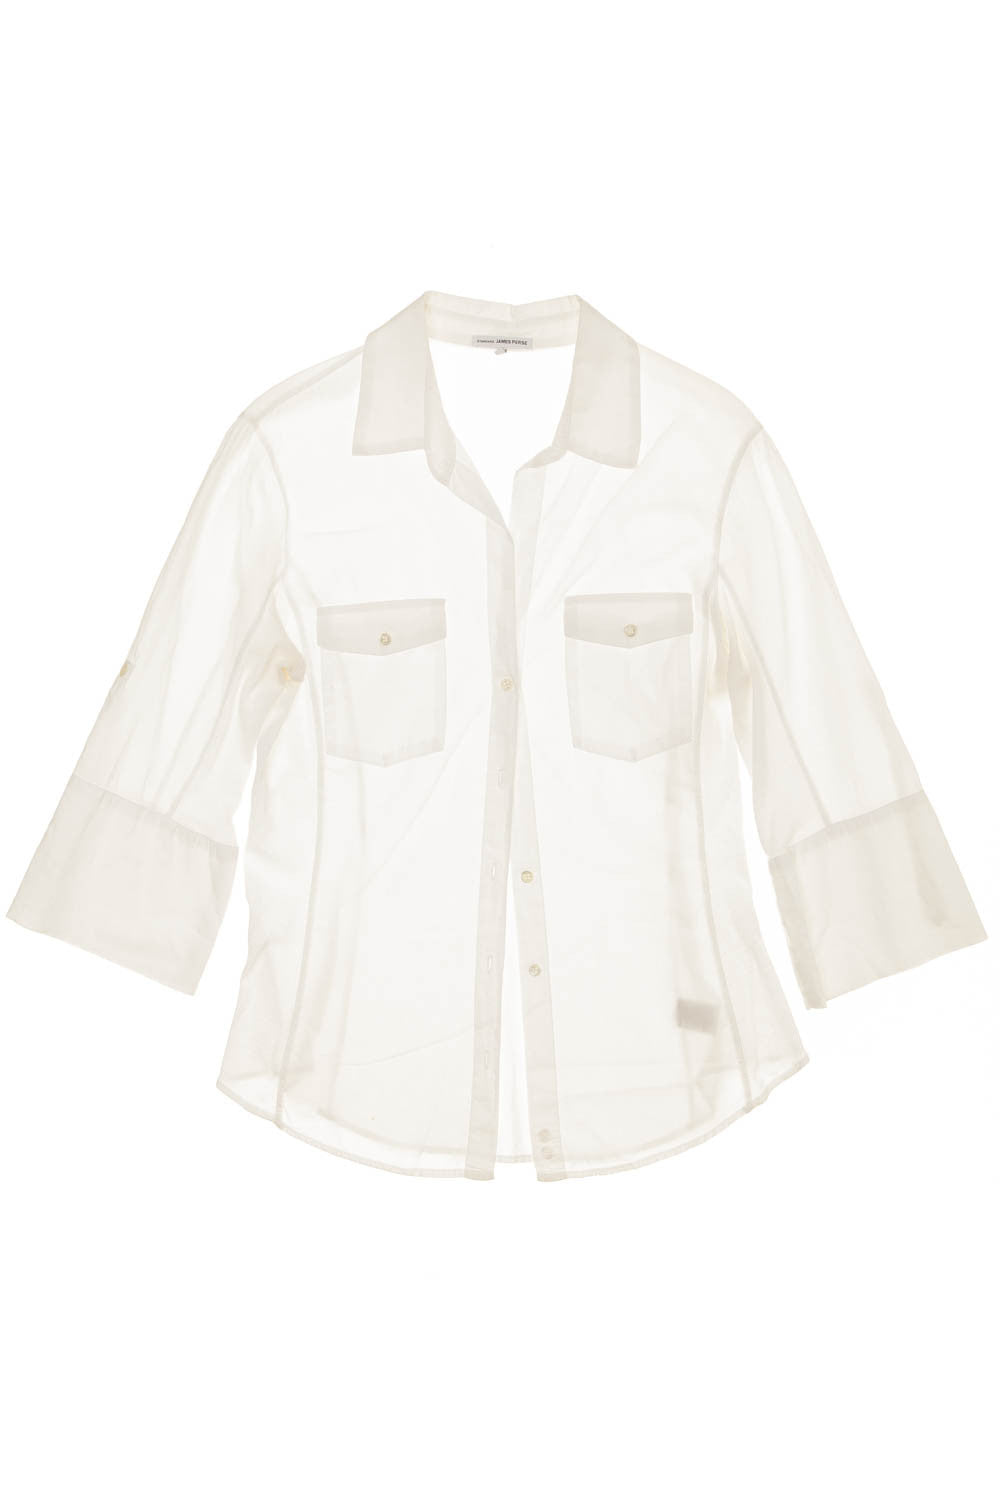 James Perse - White 3/4 Sleeve Button Up Shirt - US 4